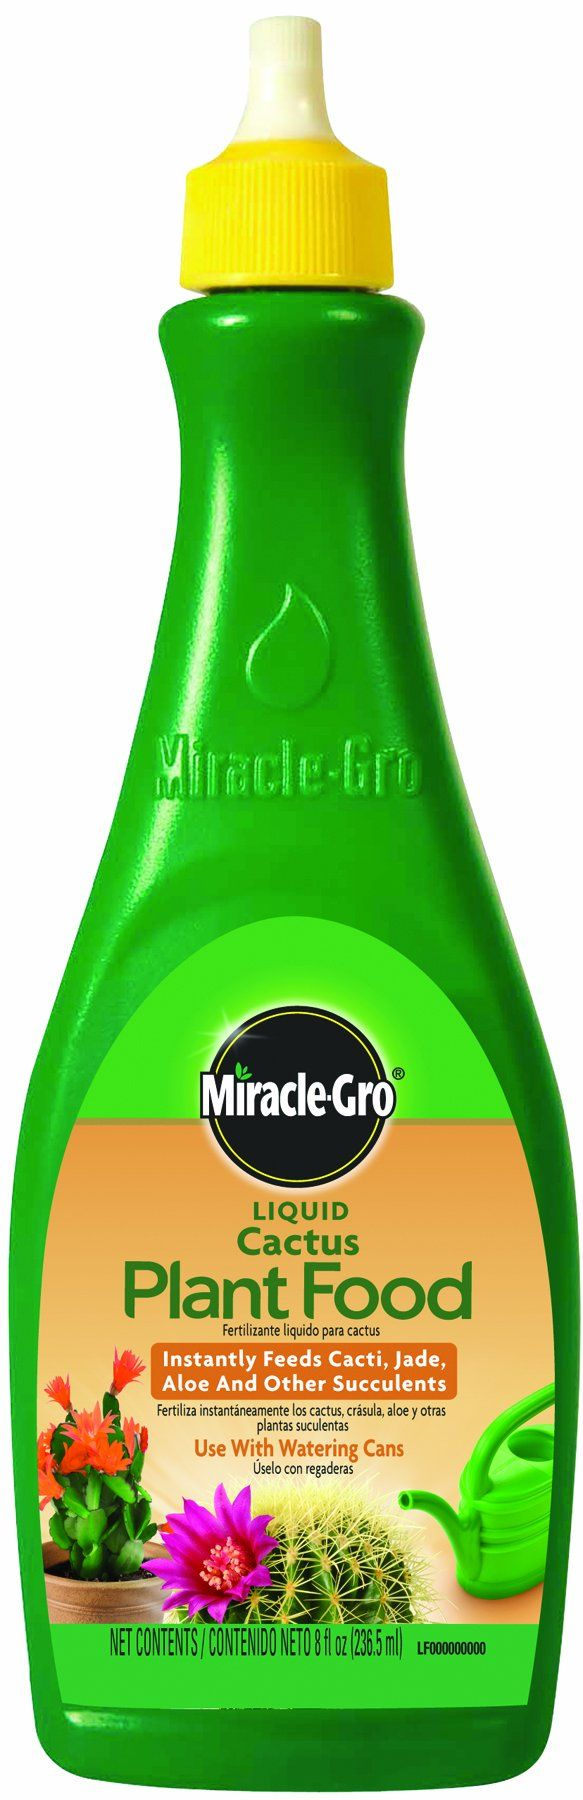 Miracle-Gro 100054 Liquid Cactus Plant Food (Fertilizer for Cacti, Jade, Aloe, and Other Succulunts)